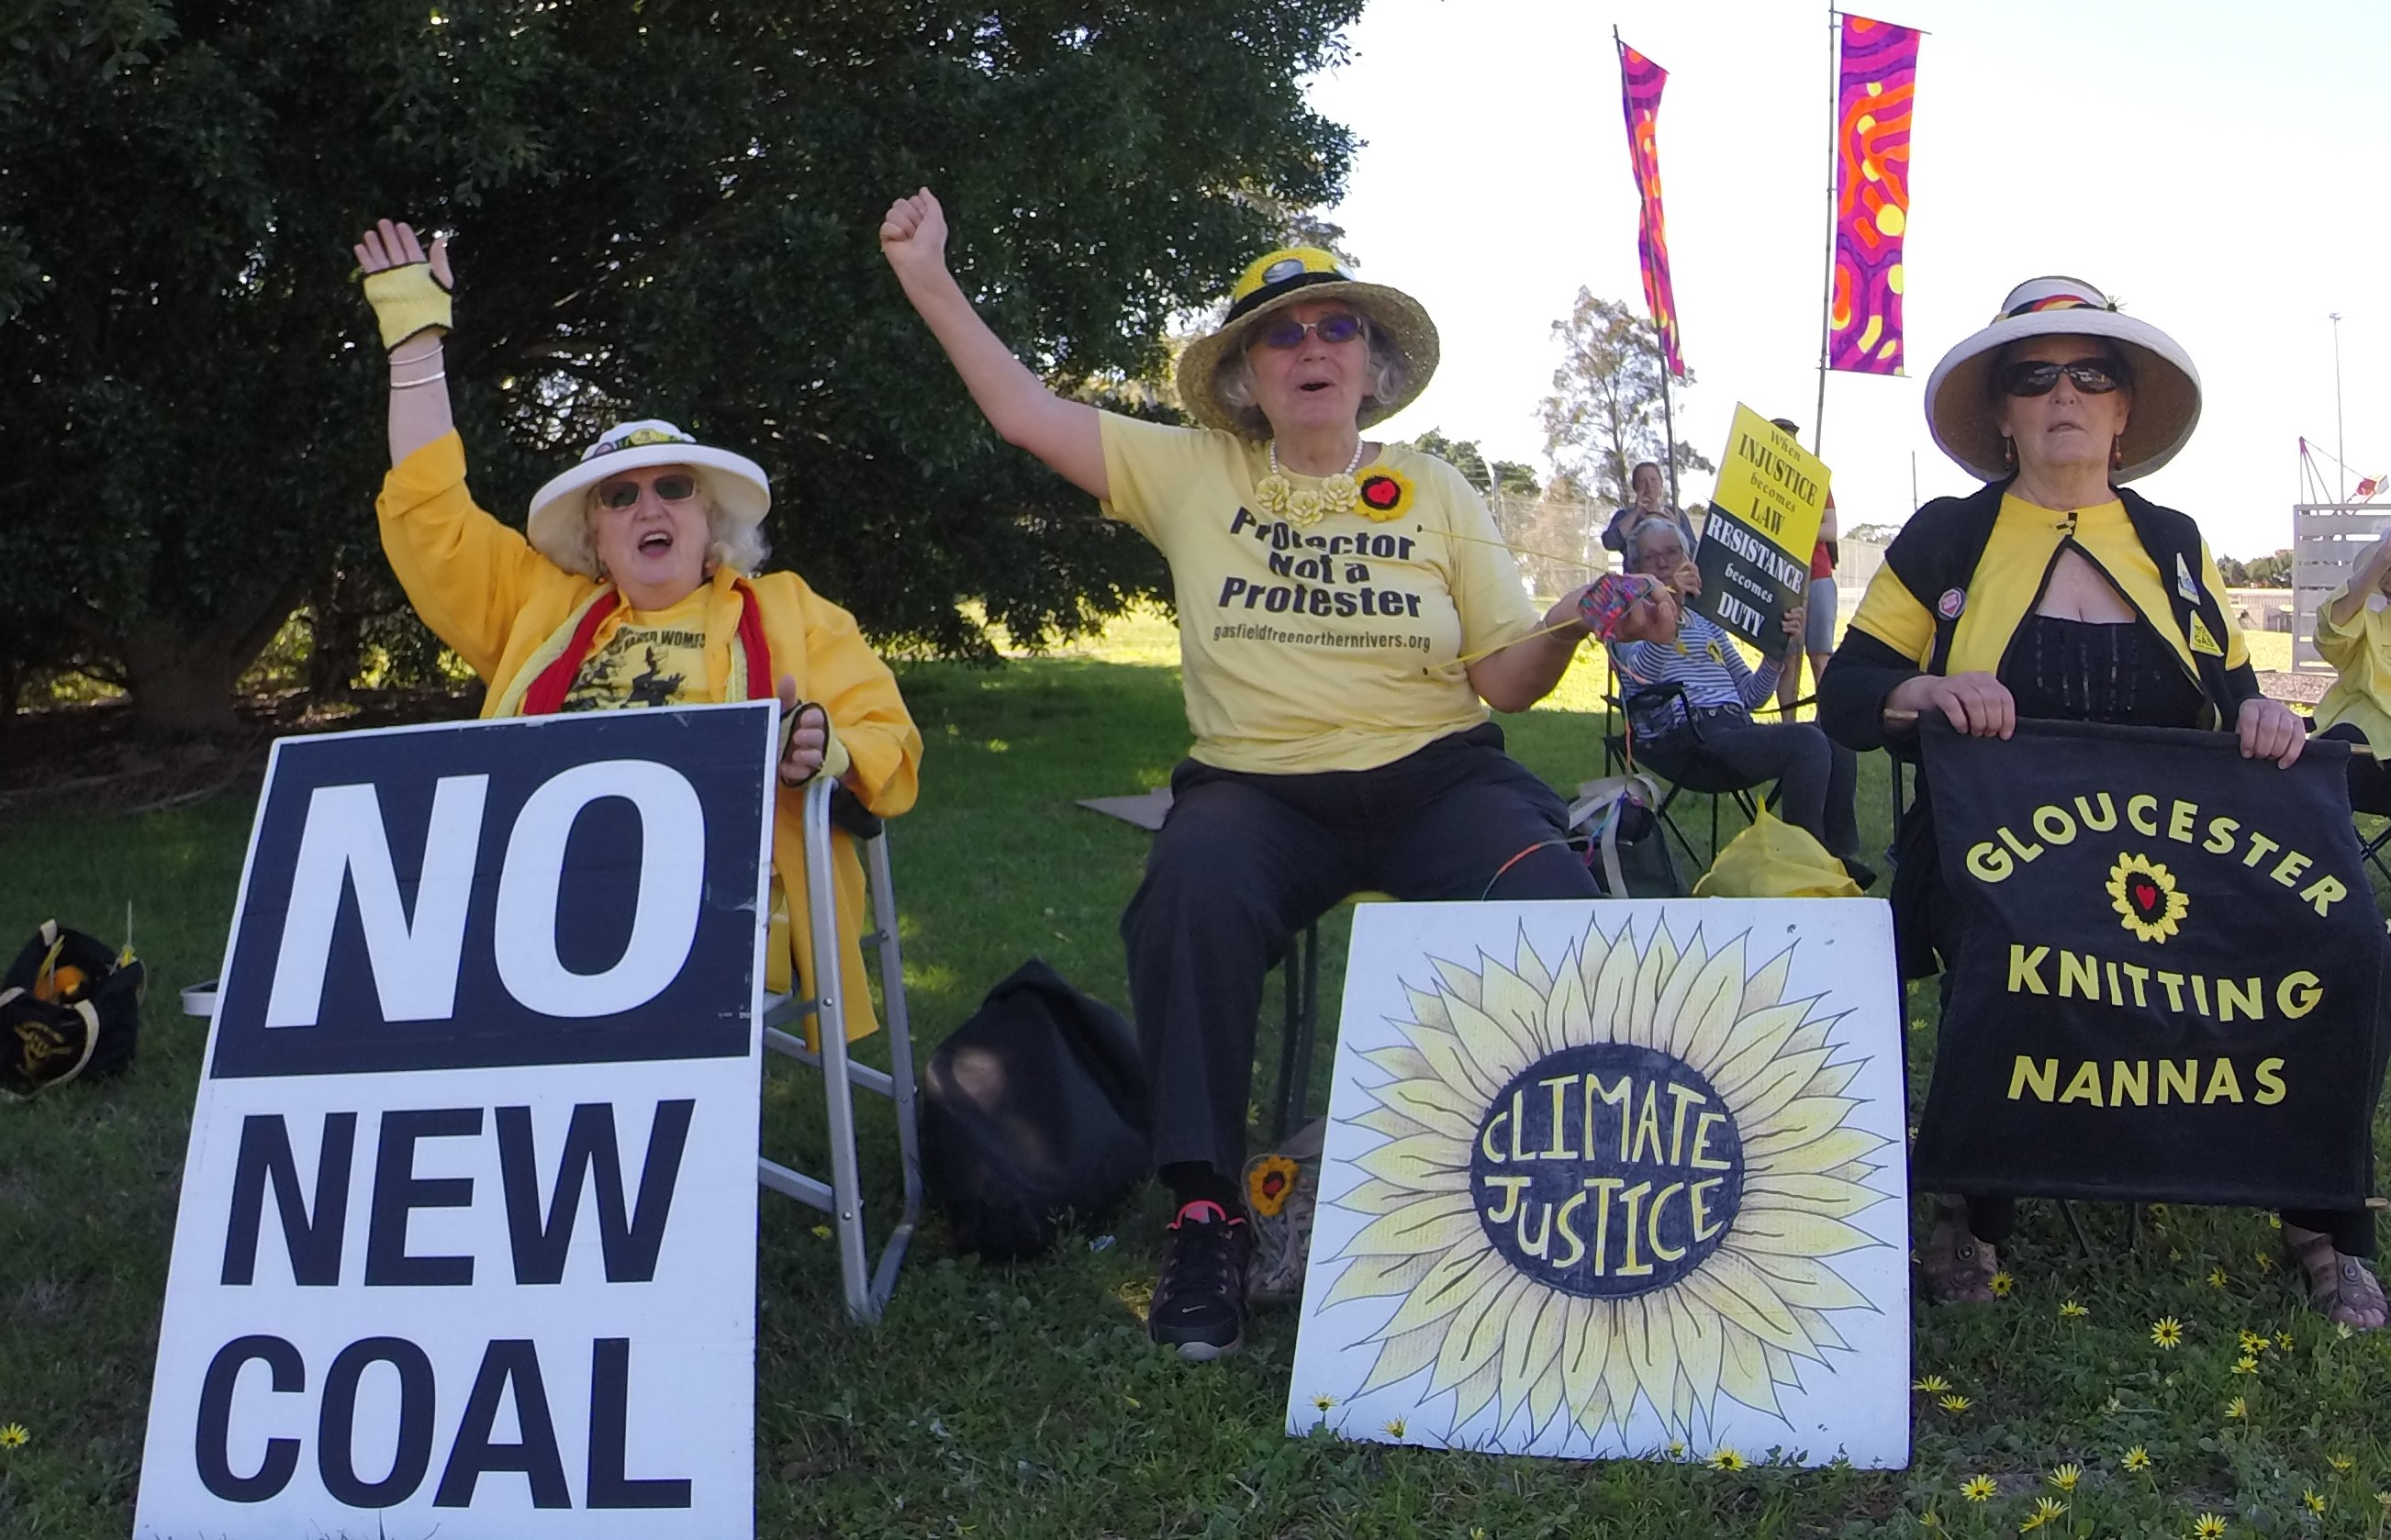 Three older women in yellow and black holding placards.